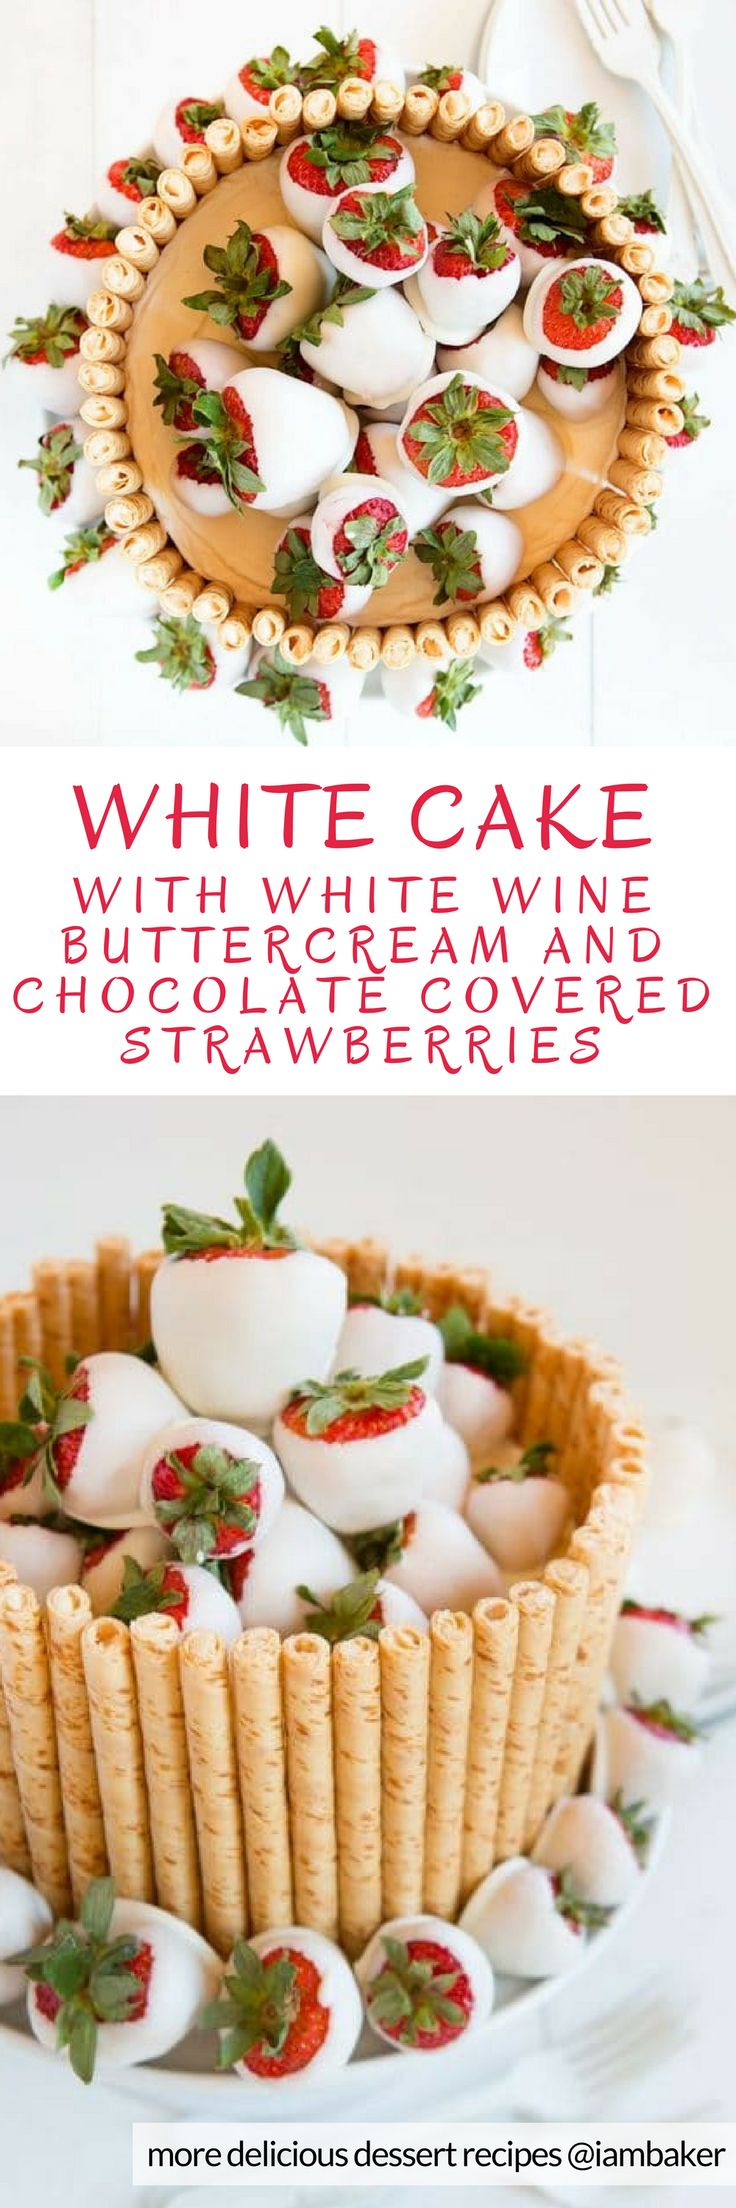 White Cake with White Wine Buttercream and Chocolate Covered Strawberries - this easy cake recipe will make you a popular baker in town! Besides this will surely one of the best cakes you'll ever be tasted! The wafer rolls and chocolate covered strawberries are the perfect complements to the White Wine Buttercream. It's definitely a show stopper! For more simple and easy dessert recipes to make, check us out at #iambaker. #cakes #desserts #sweettooth